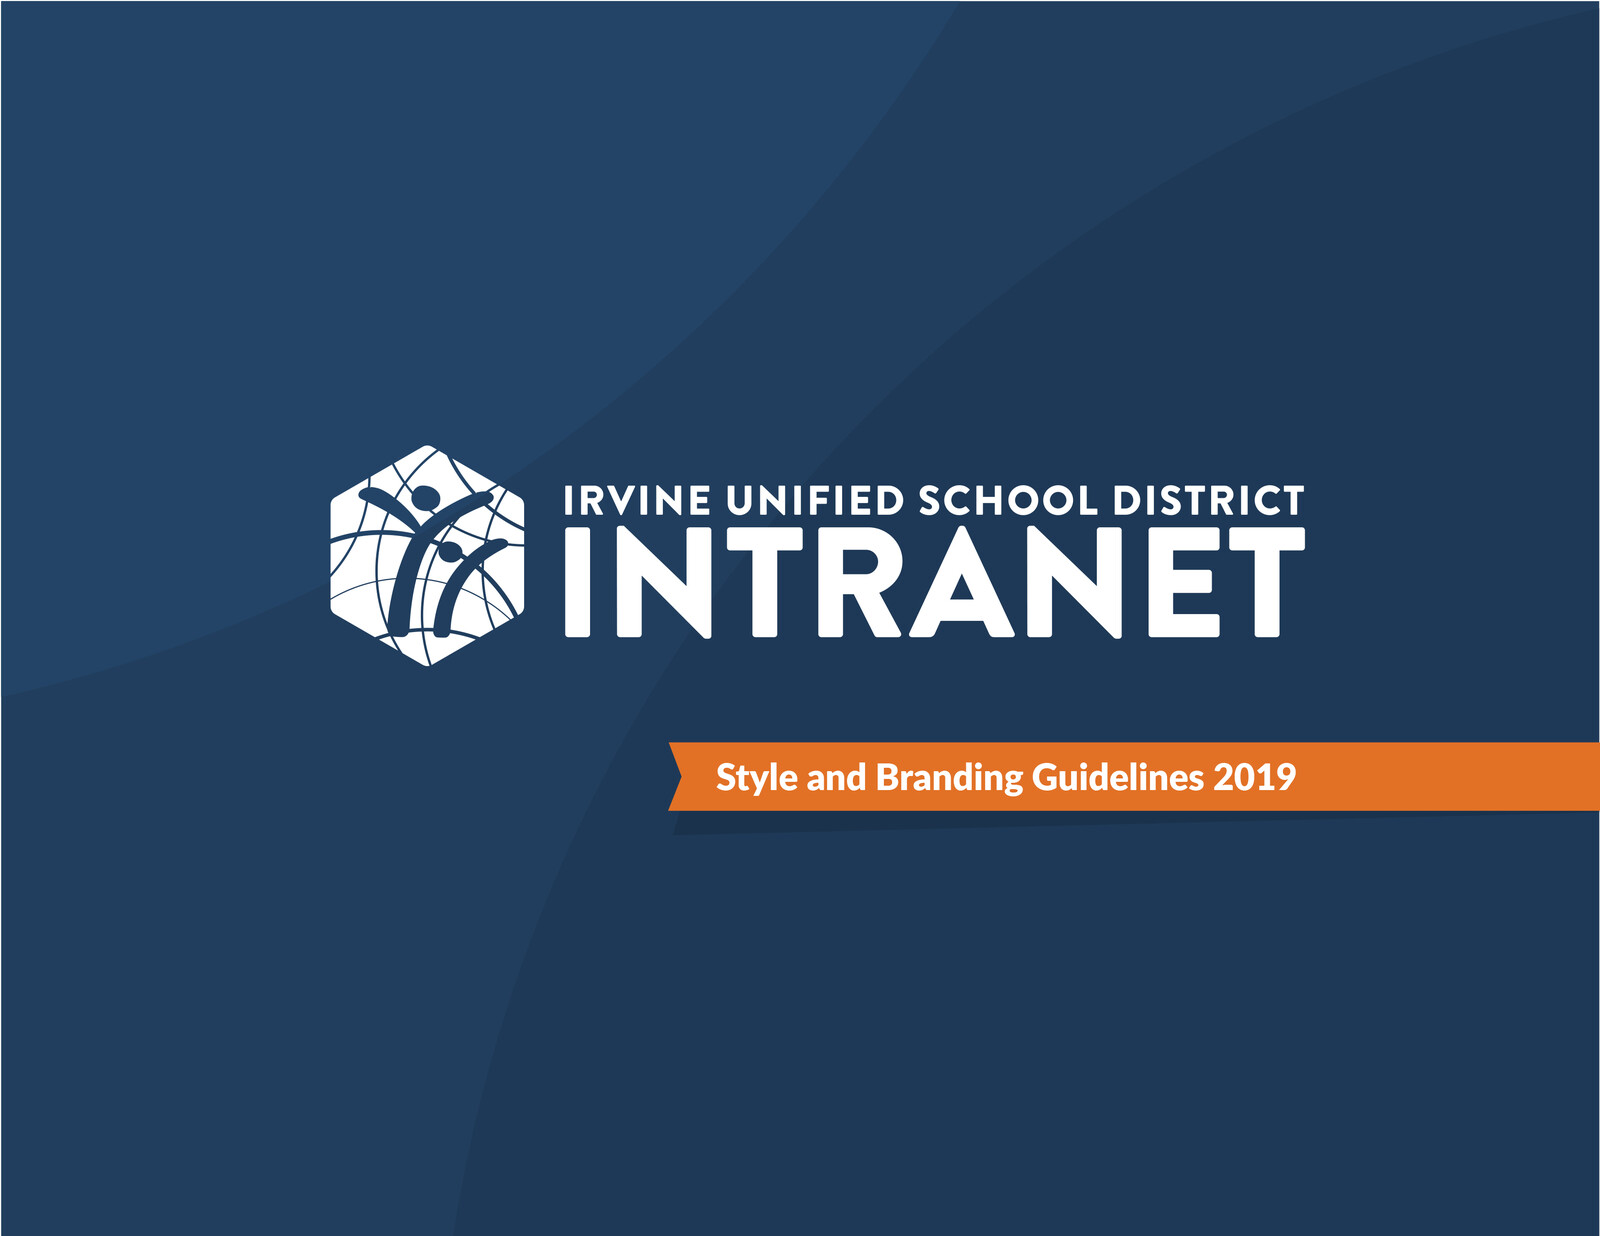 IUSD Intranet Brand Style Guide